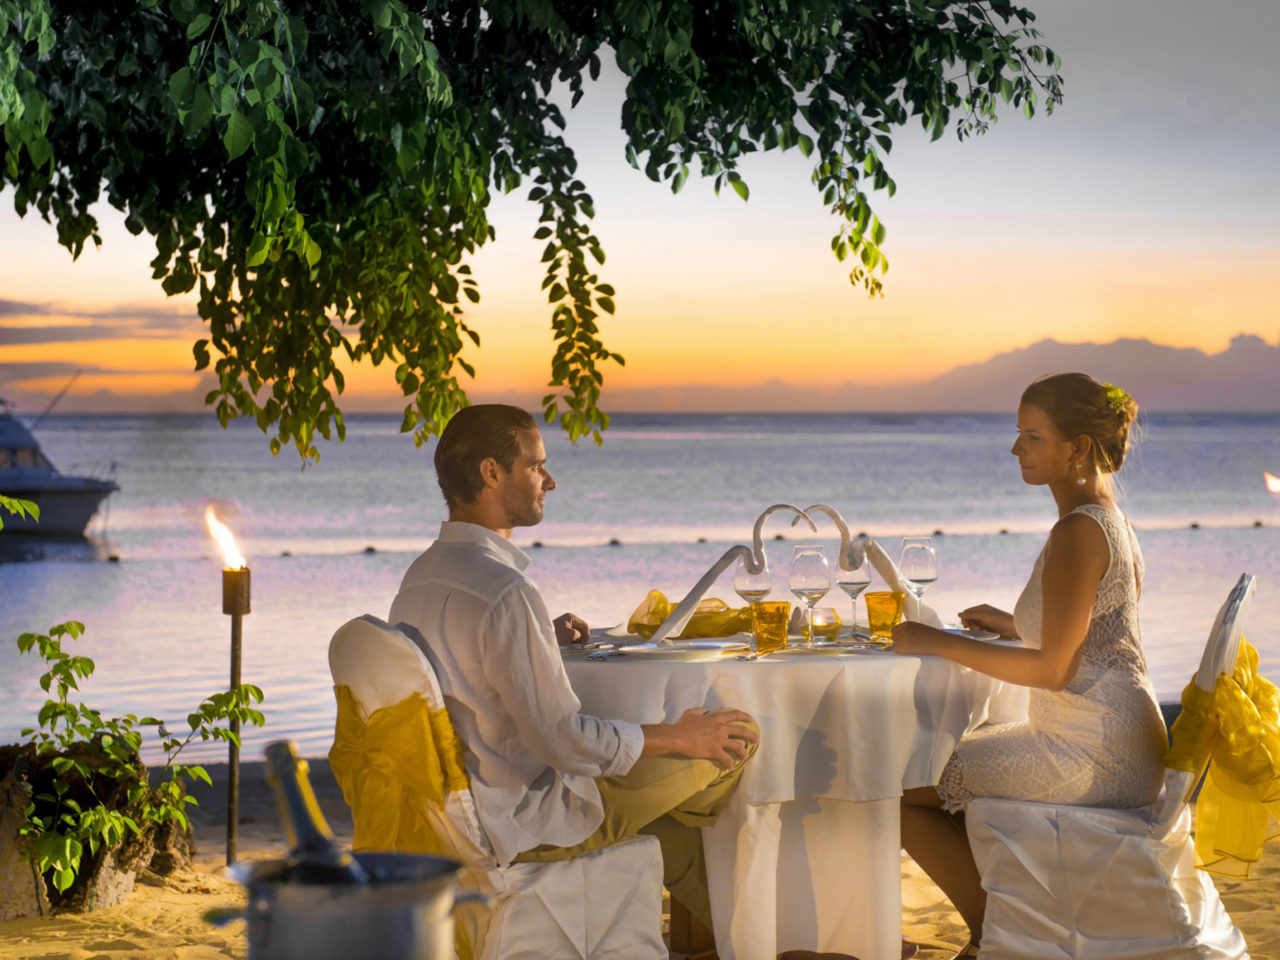 Loving Boy And Girl Hd Wallpapers Love Couple Romantic Dinner On The Beach Hd Love Wallpaper